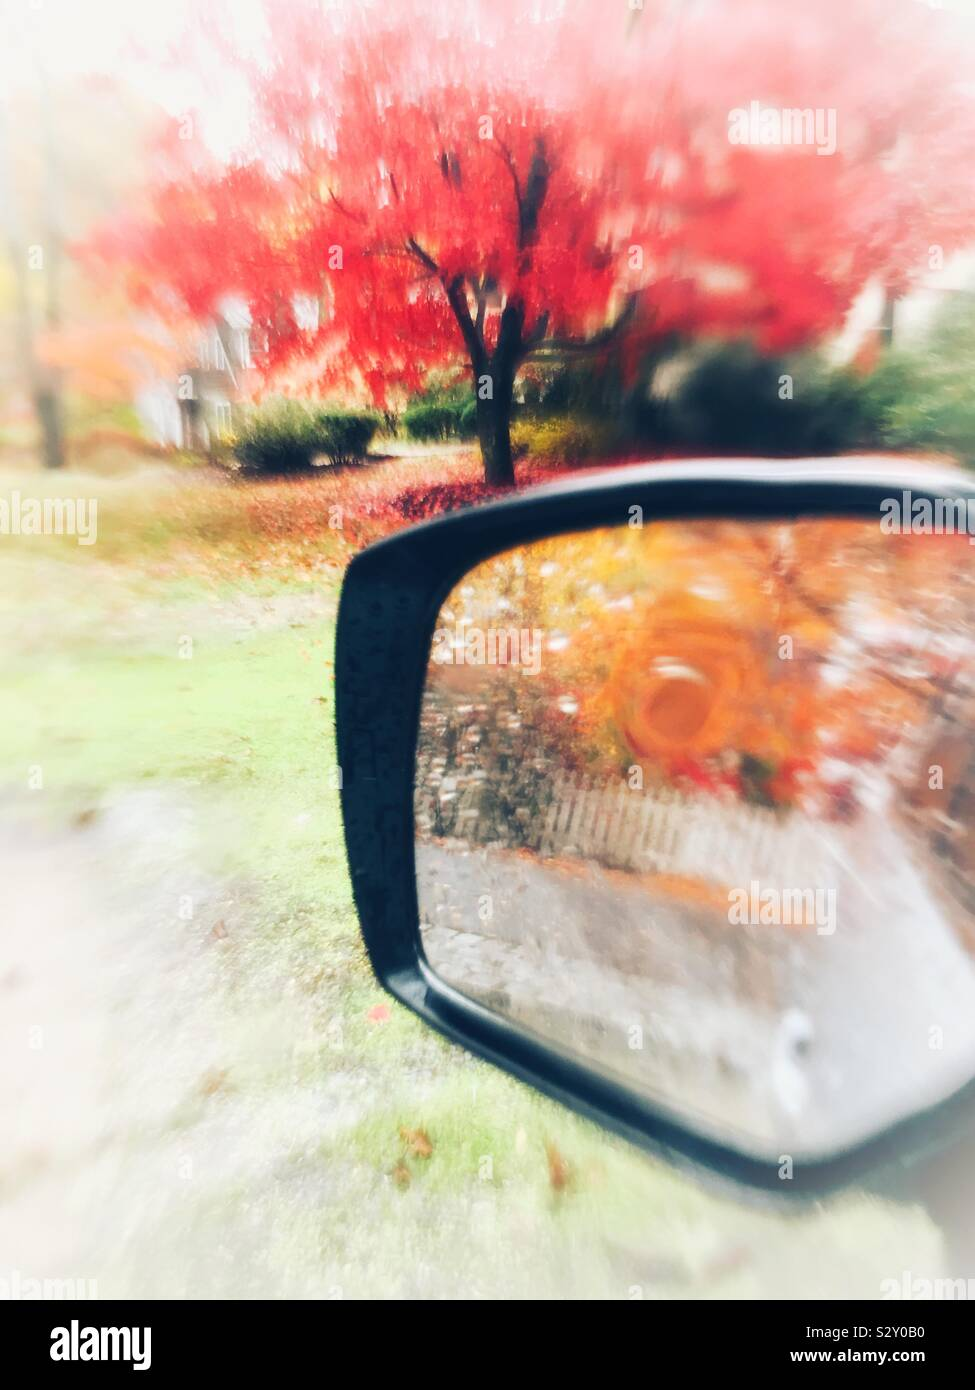 Rainy day autumnal abstract red Japanese maple tree Acer palmatum and orange fall leaves reflections in car mirror autumn vertical abstract mobile background with copy space. Stock Photo